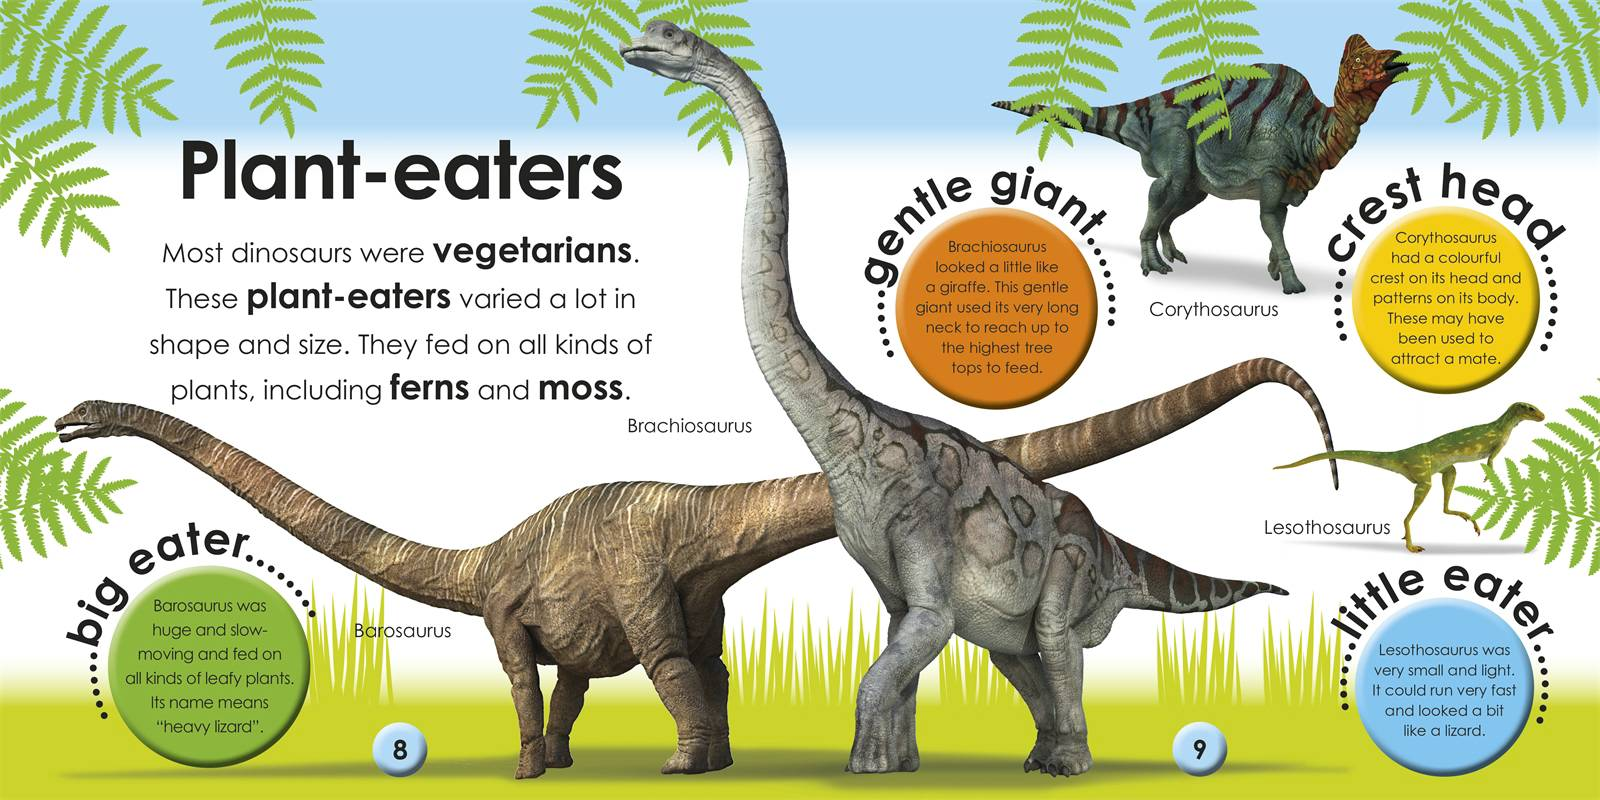 Dinosaur Pictures And Names For Kids